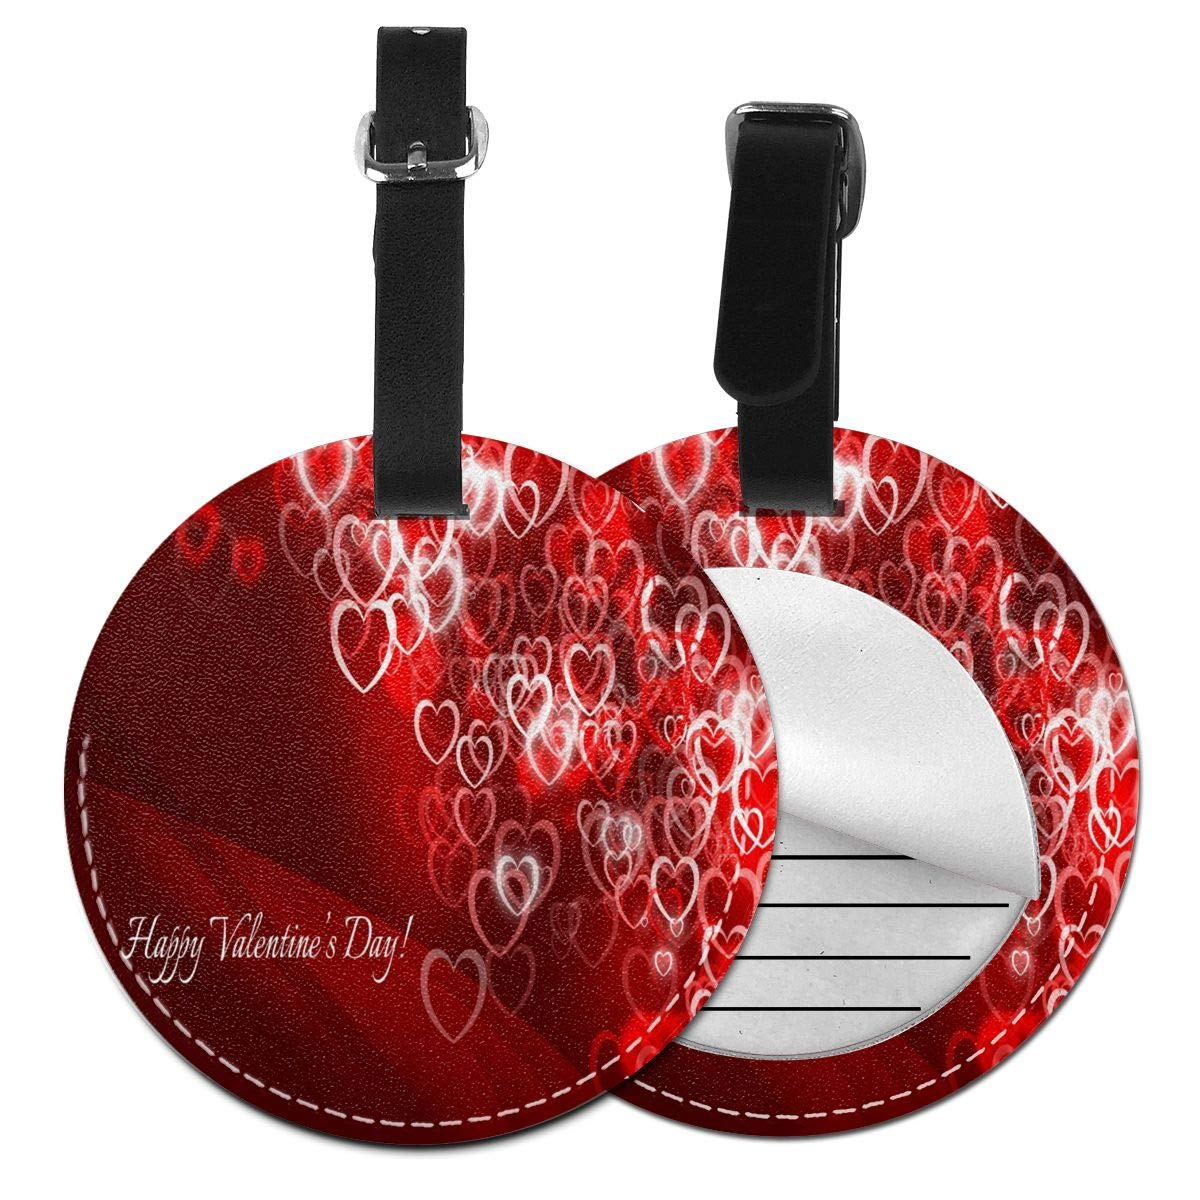 Love Happy Valentine's Day Designer Round Luggage Tags Suitcase Labels Bag Travel Accessories Tough 4 Pack by Rachel Dora